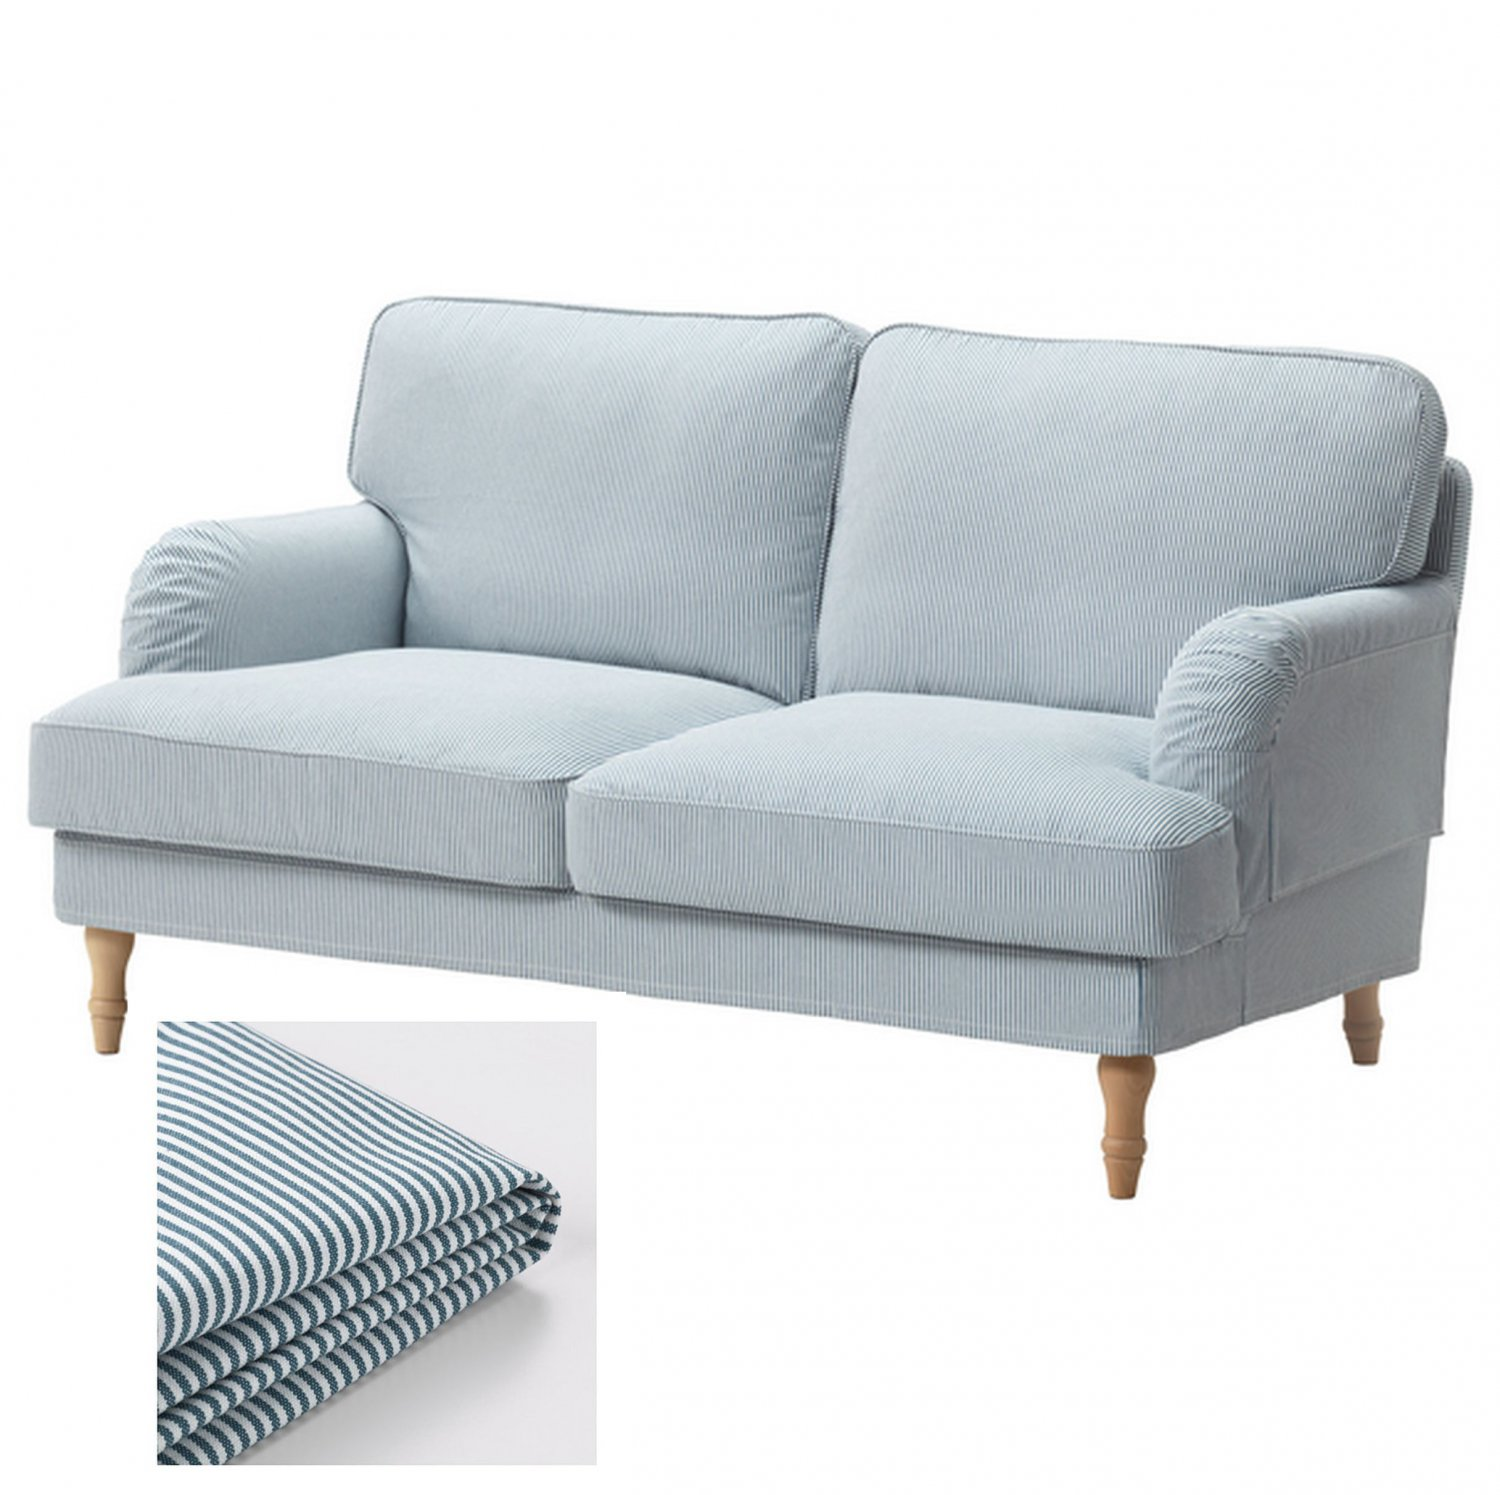 Ikea Loveseat Ikea Stocksund 2 Seat Sofa Slipcover Loveseat Cover Remvallen Blue White Stripes